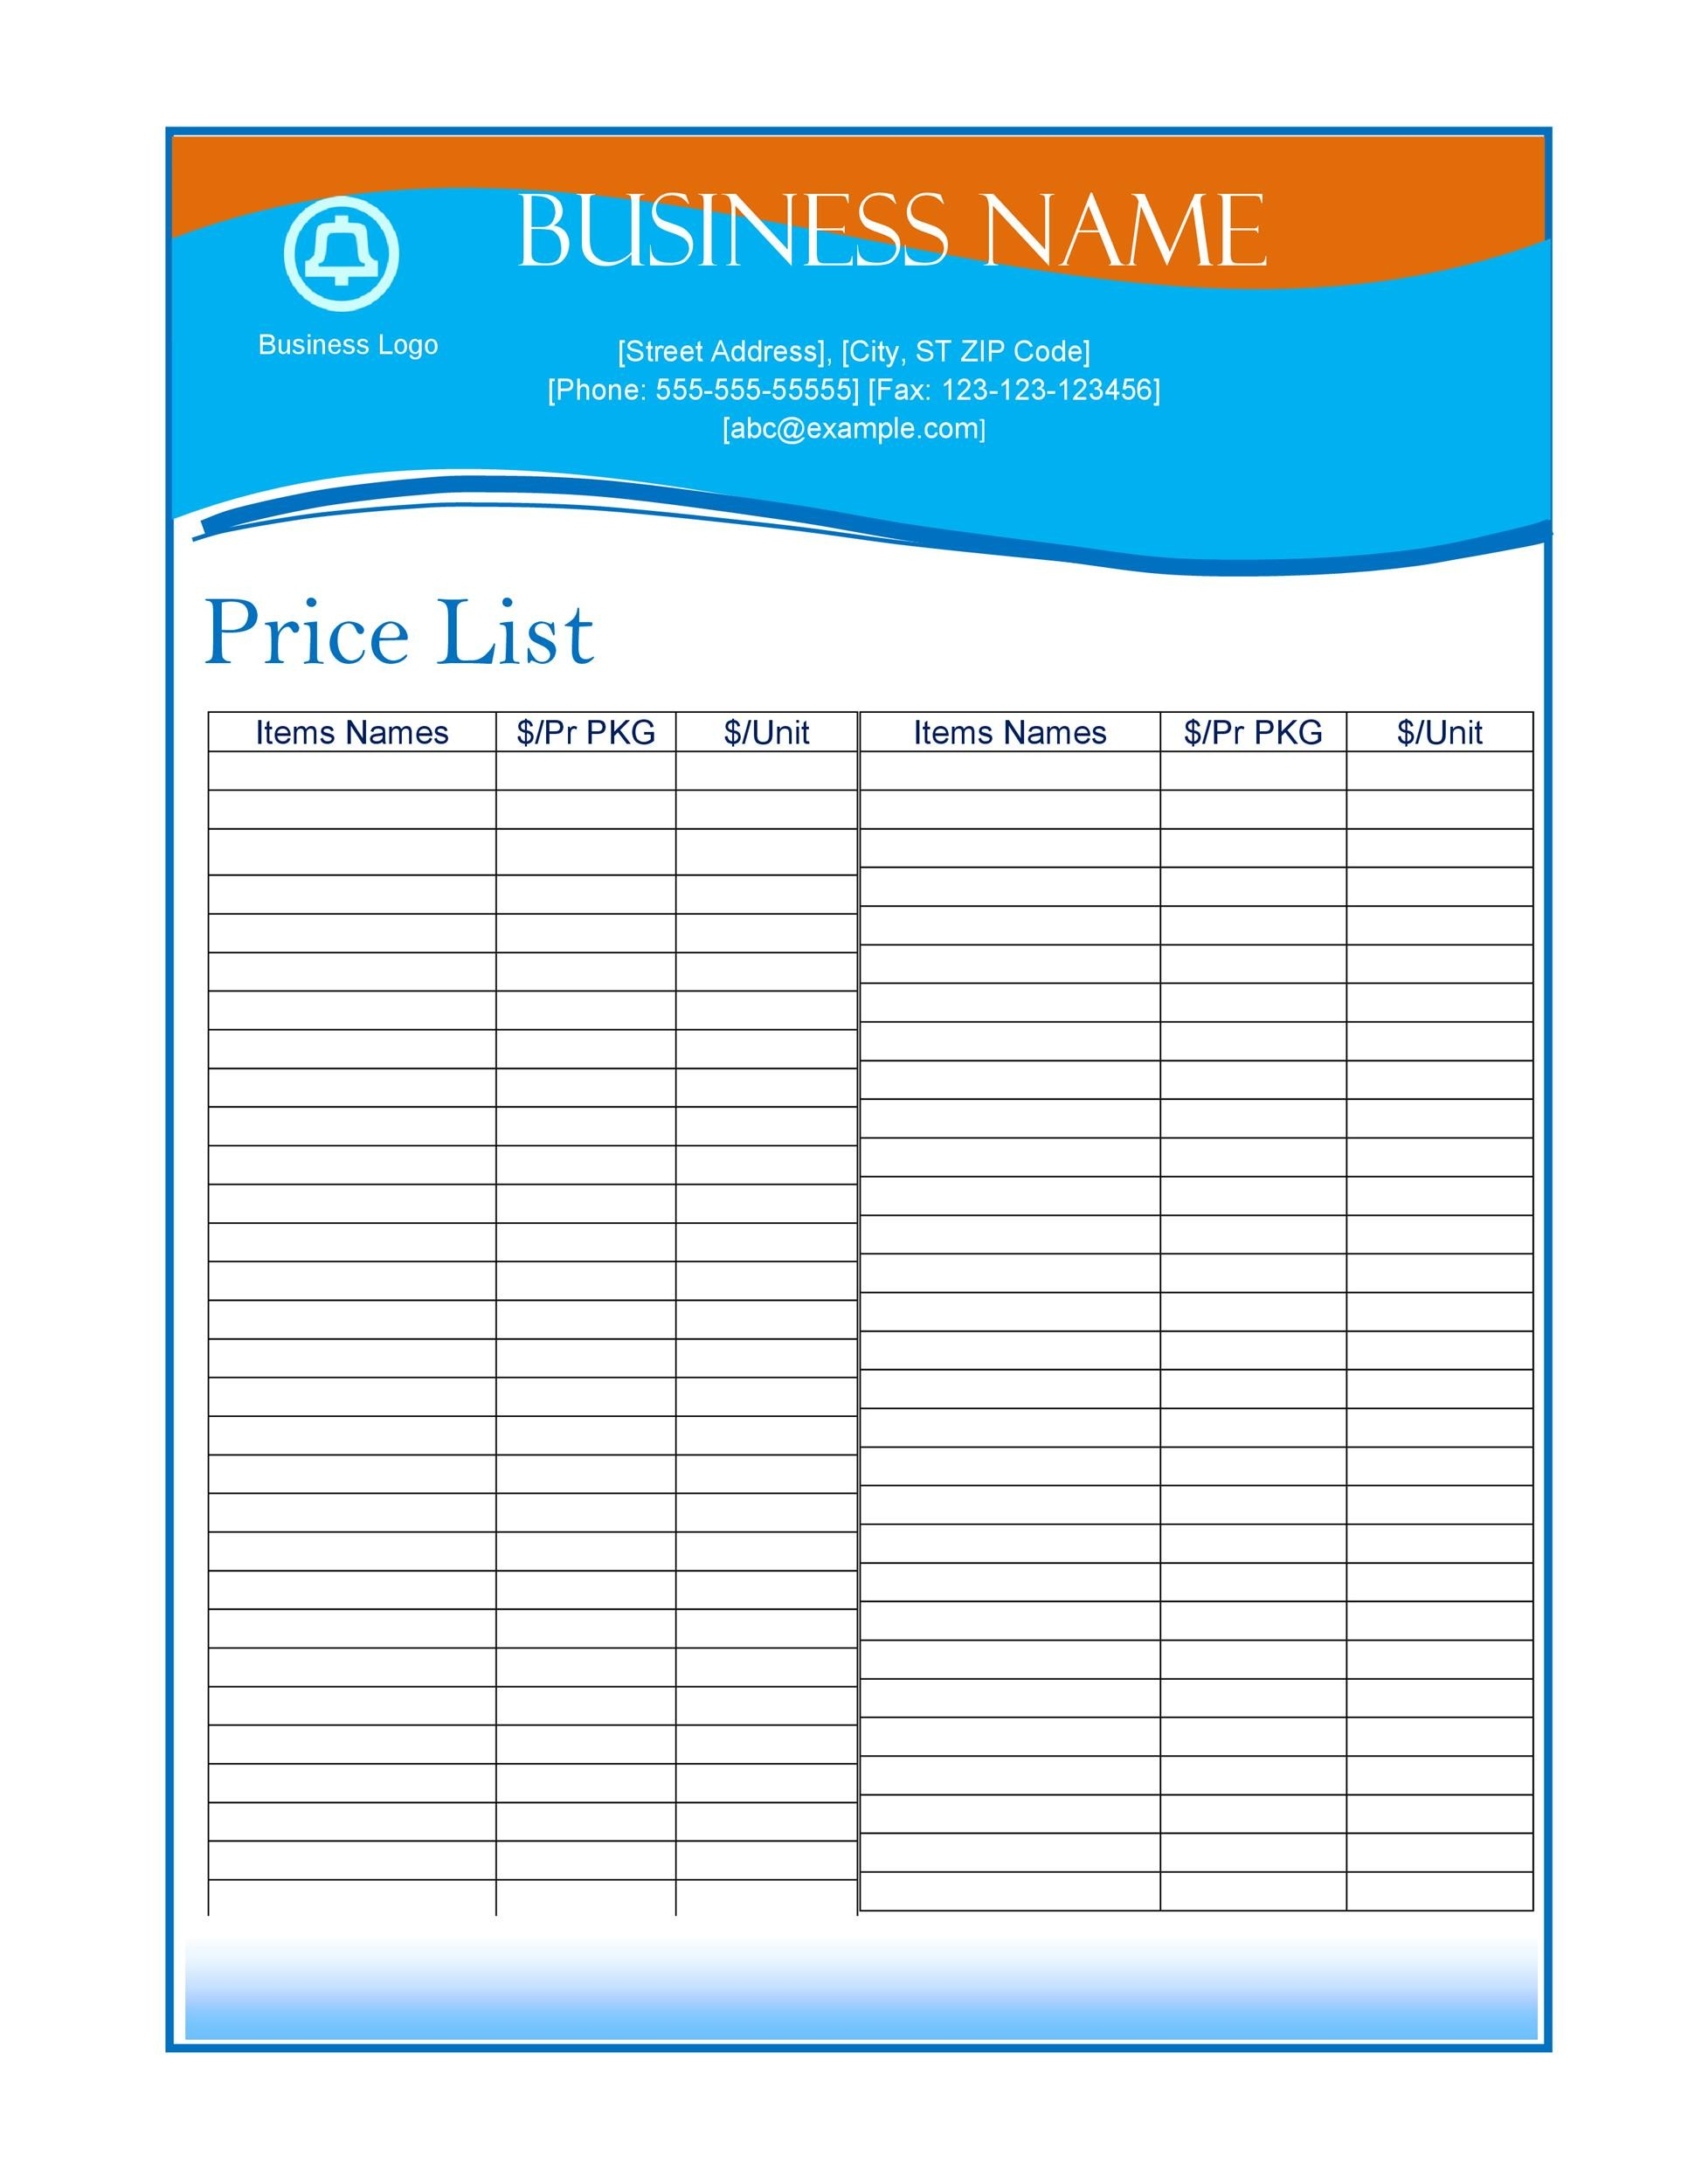 Price List Format | 40 Free Price List Templates Price Sheet Templates ᐅ Template Lab